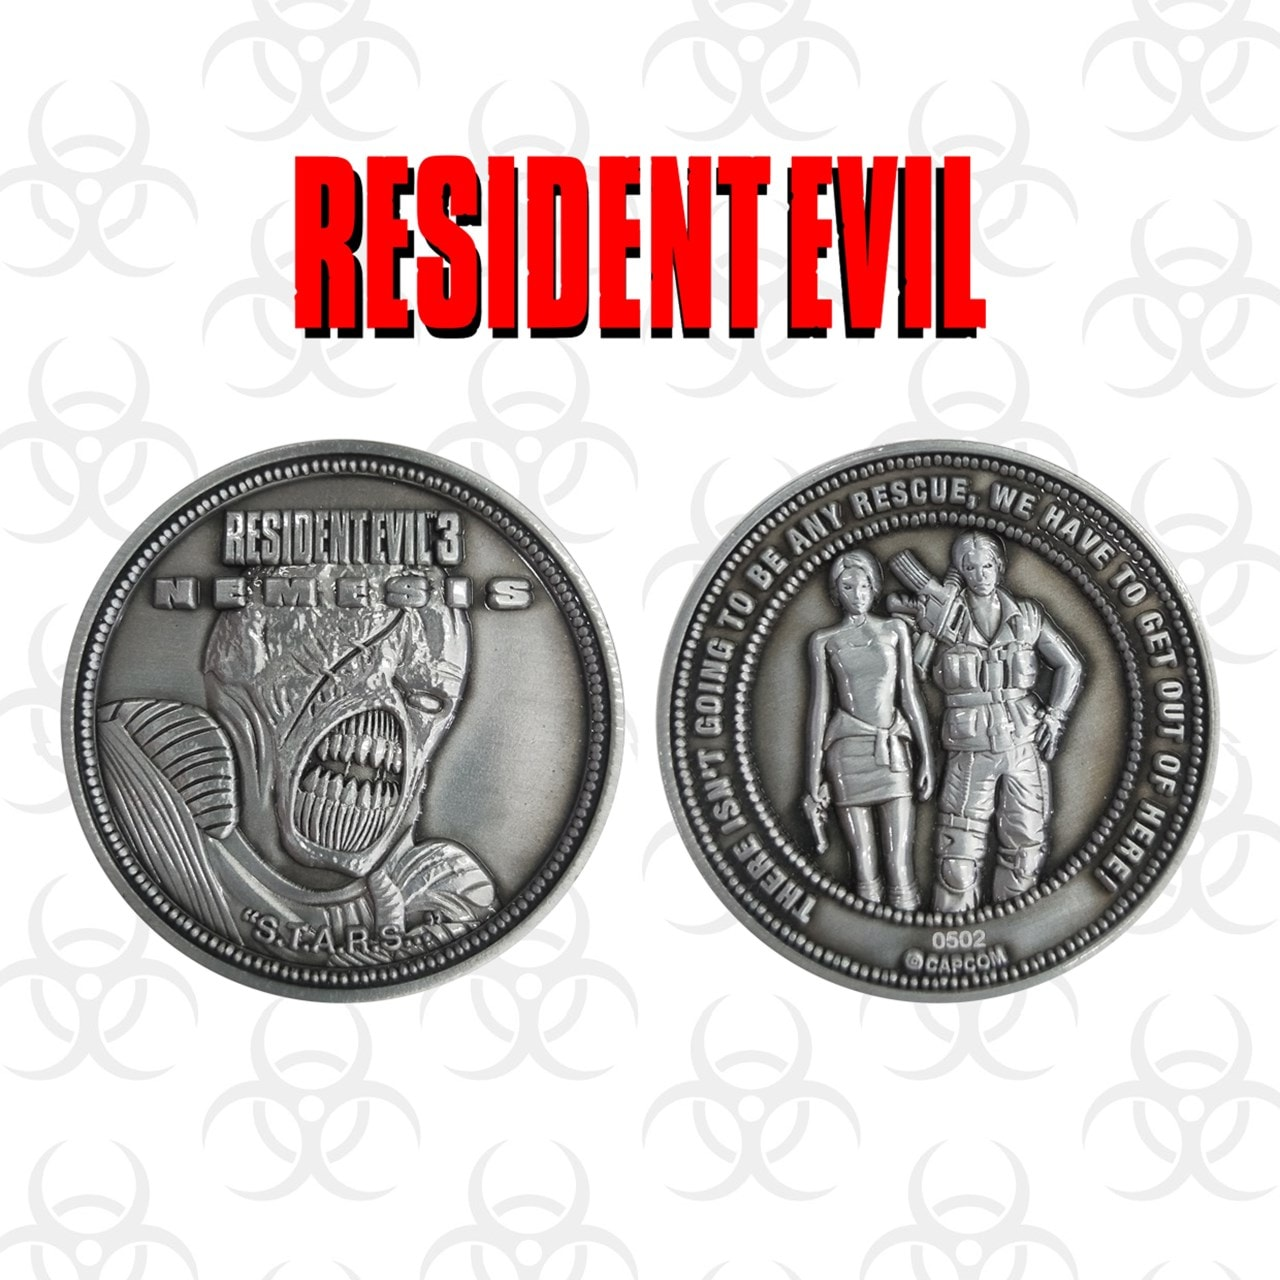 Resident Evil 3: Limited Edition Coin - 3